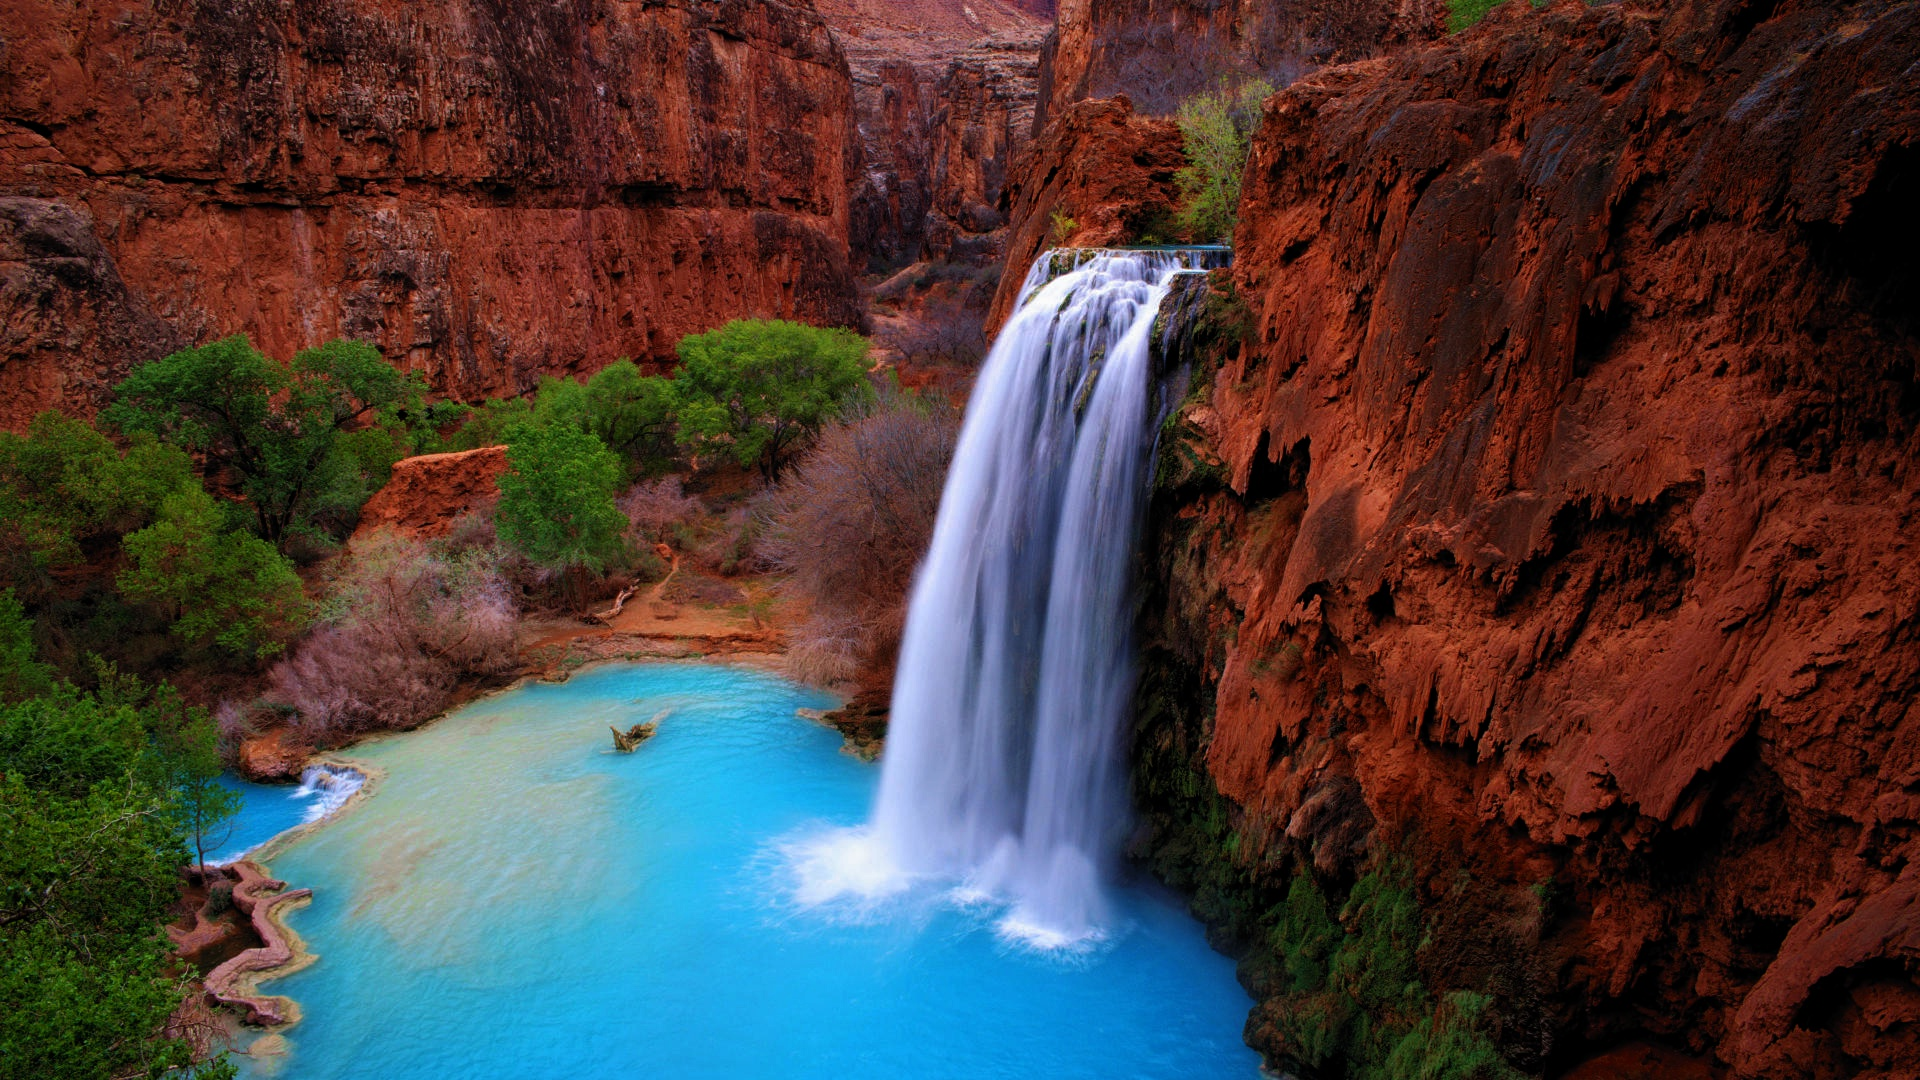 Cool Wallpapers Water Fall 9 Havasu Falls Hd Wallpapers Background Images